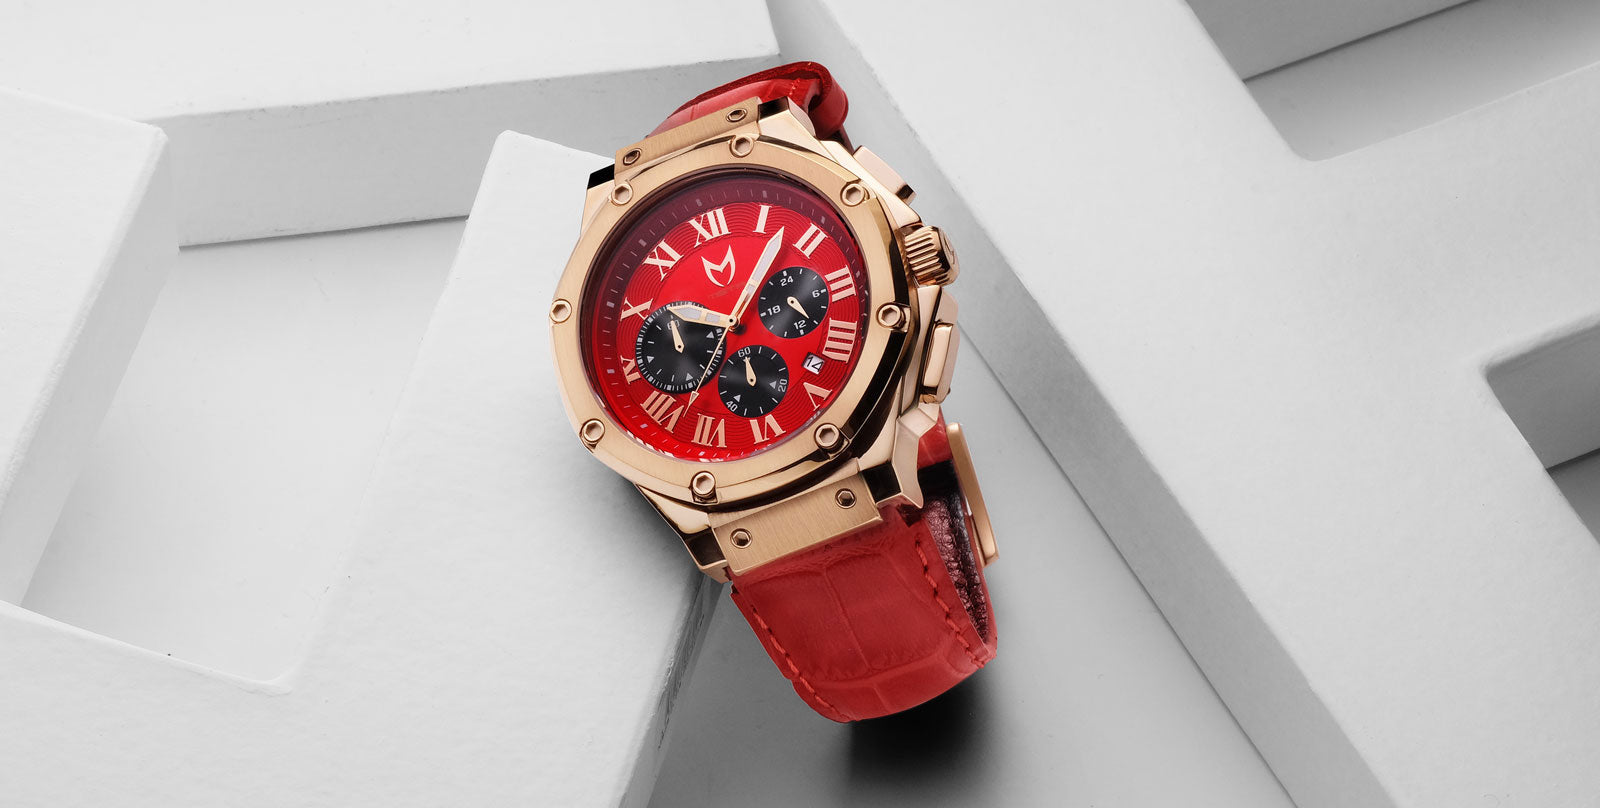 34d5319417 ... and red croc band. This watch stands out like no other watch, because  of the color combination and semi-polished case and bezel. This ambassador  is very ...